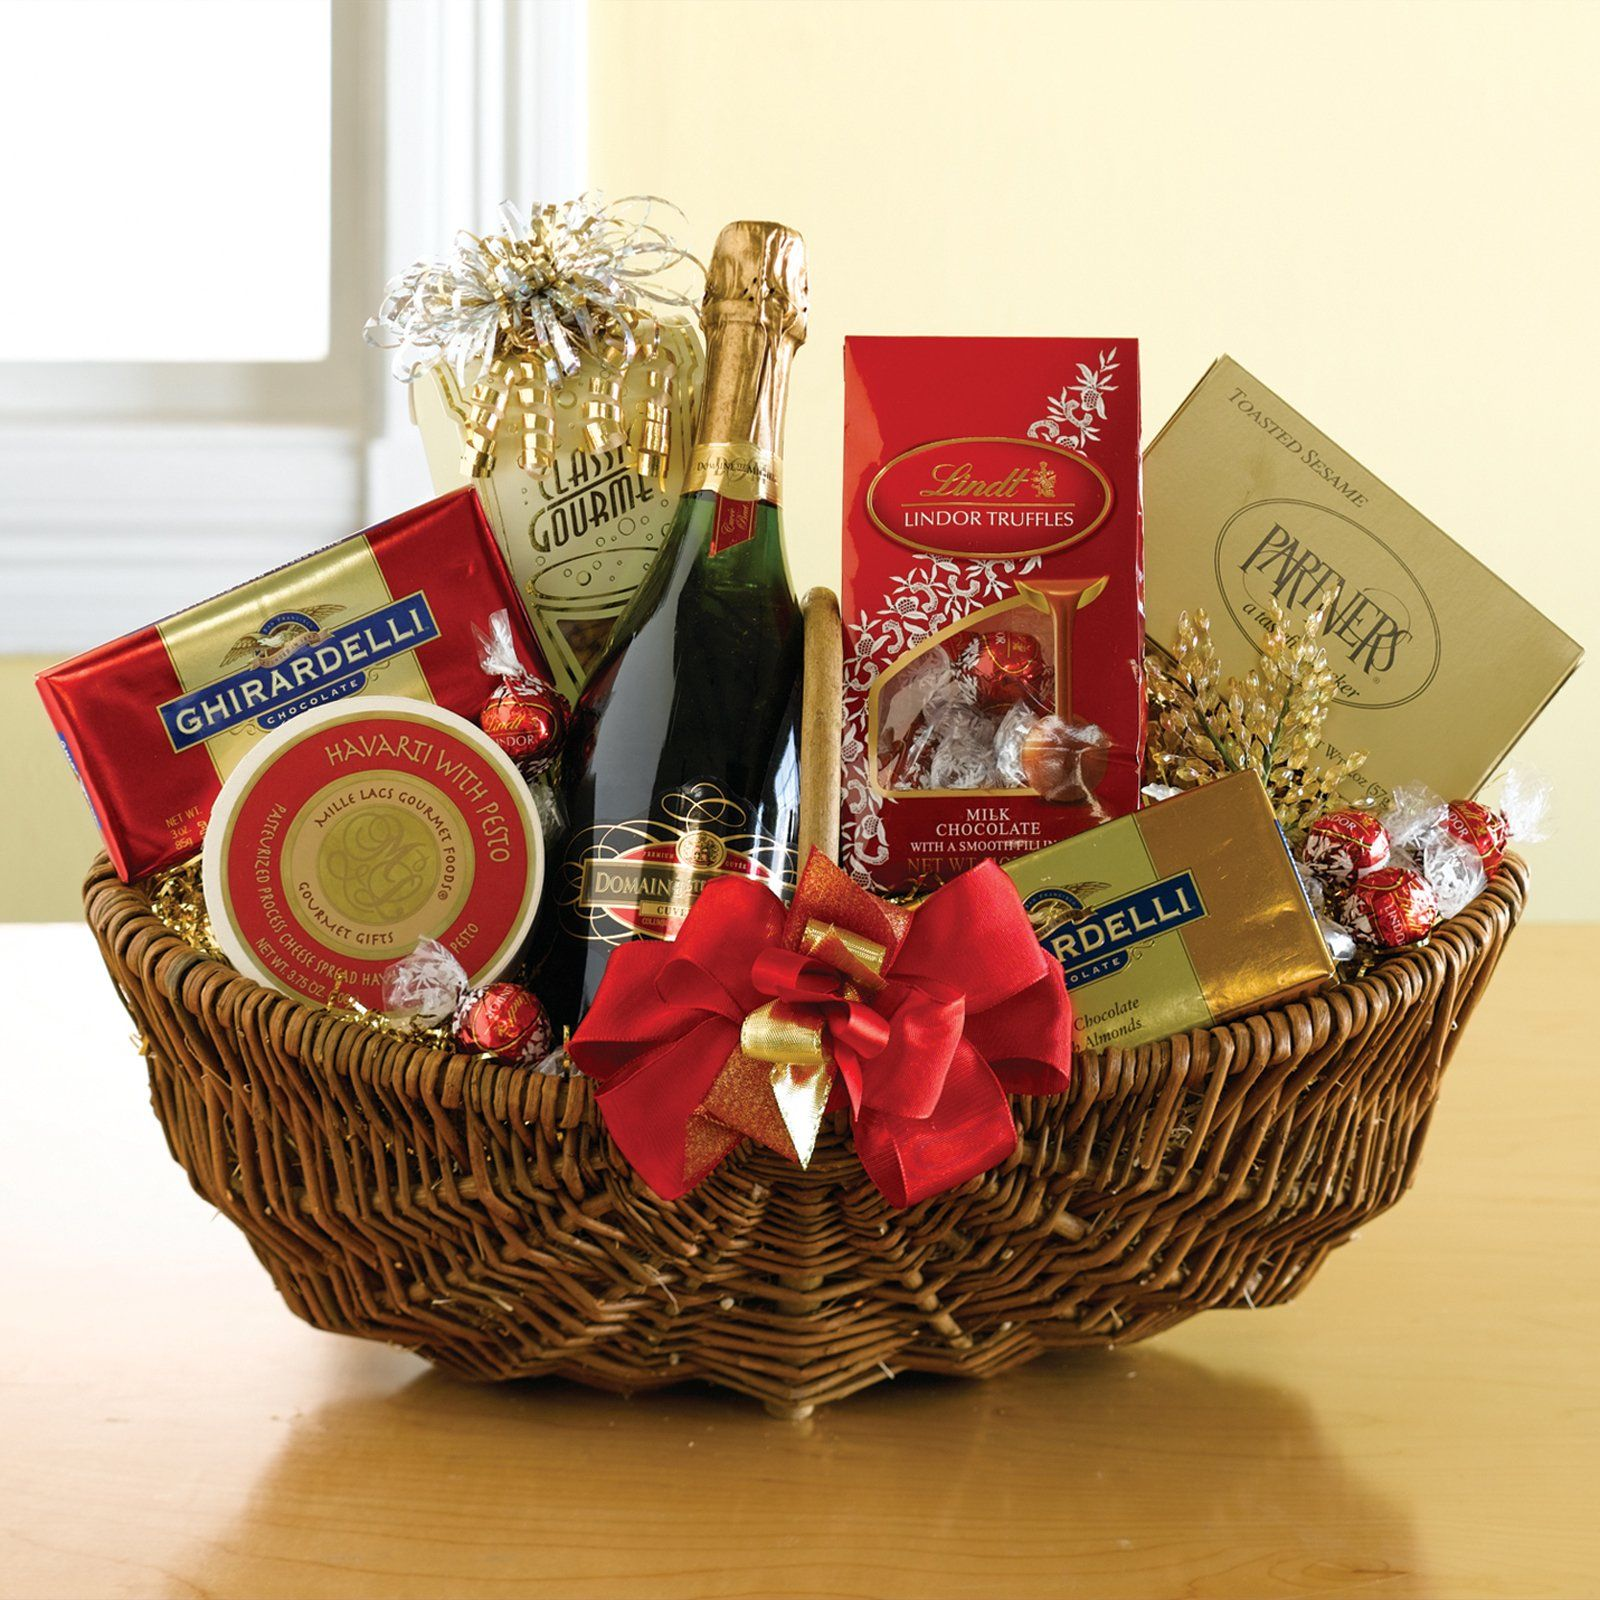 How To Make A Gift Basket Best Ideas Christmas Gift Hampers Making A Gift Basket Valentine Gift Baskets